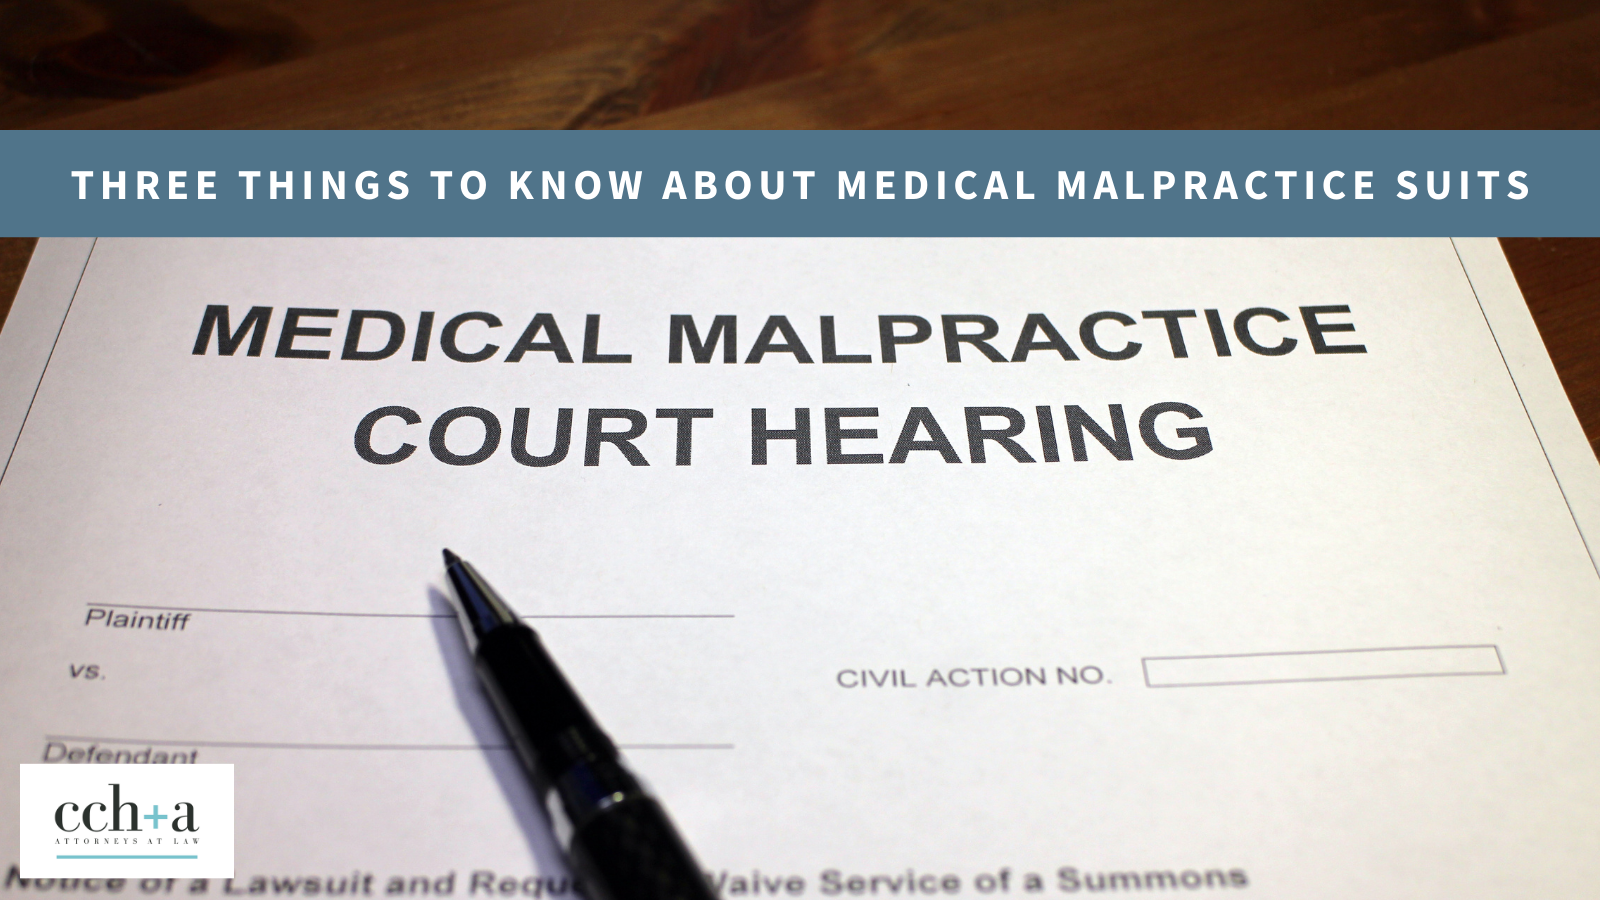 Ccha march 2021 three things to know about medical malpractice suits tw